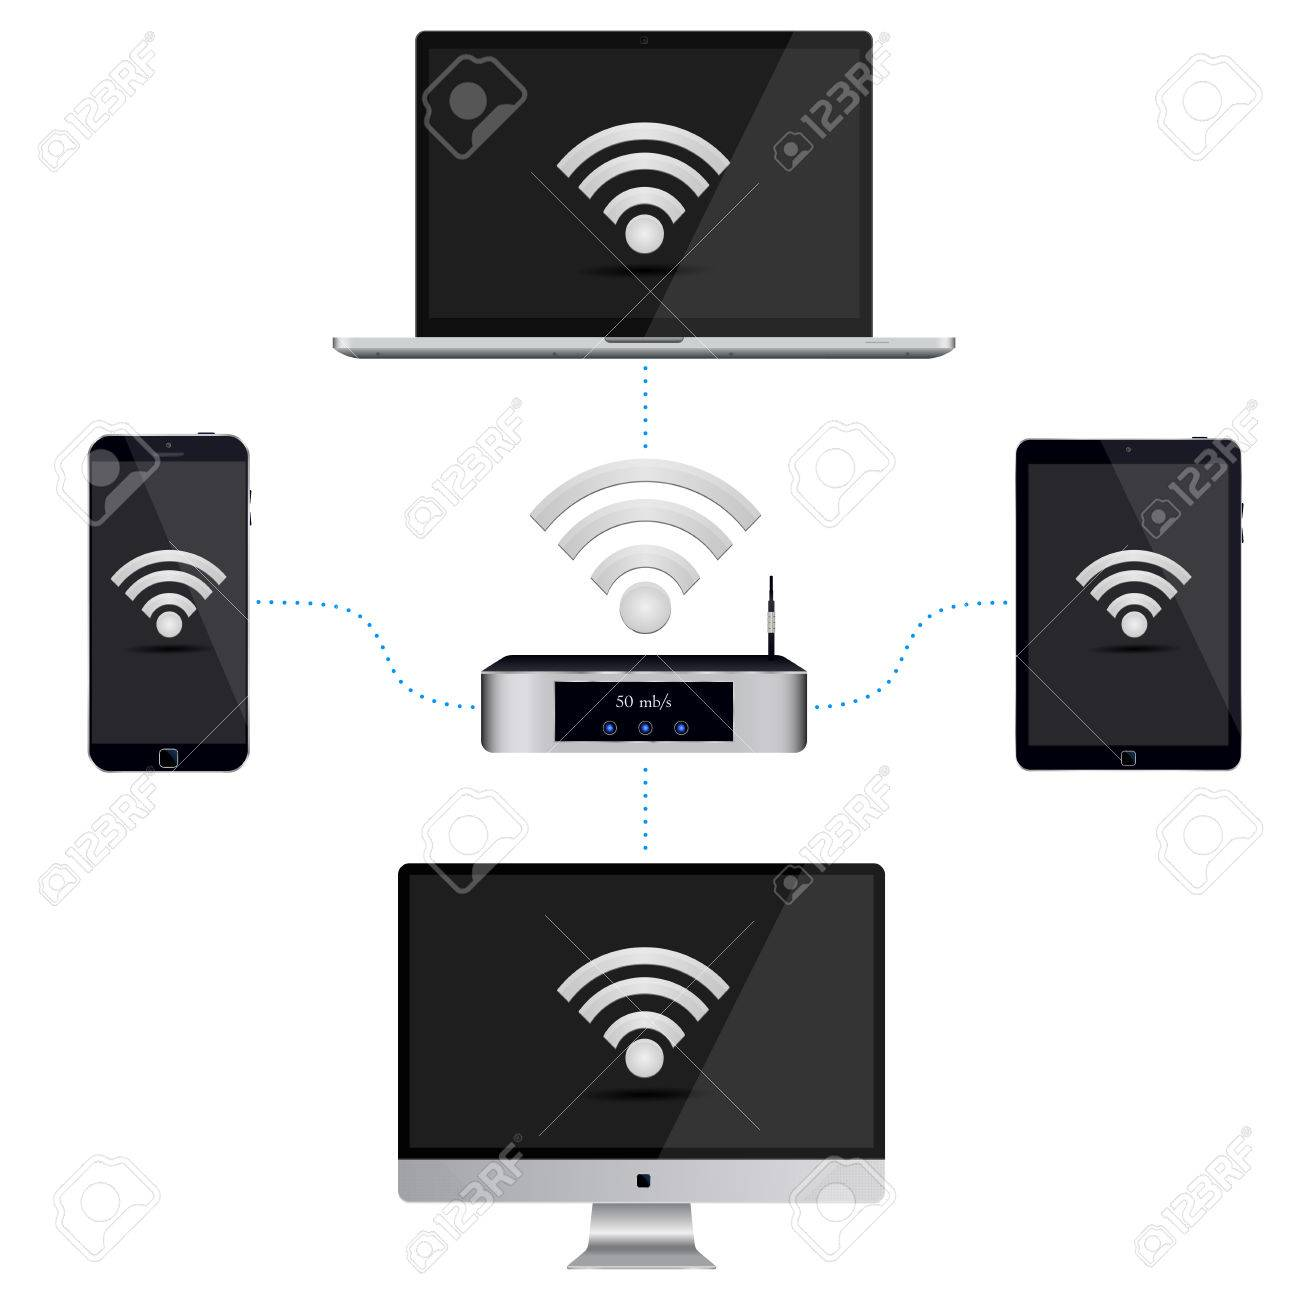 wiring diagram of the smartphone pc and tablet to the router vector wiring diagram of the smartphone pc and tablet to the router a signal vector illustration on isolated white background